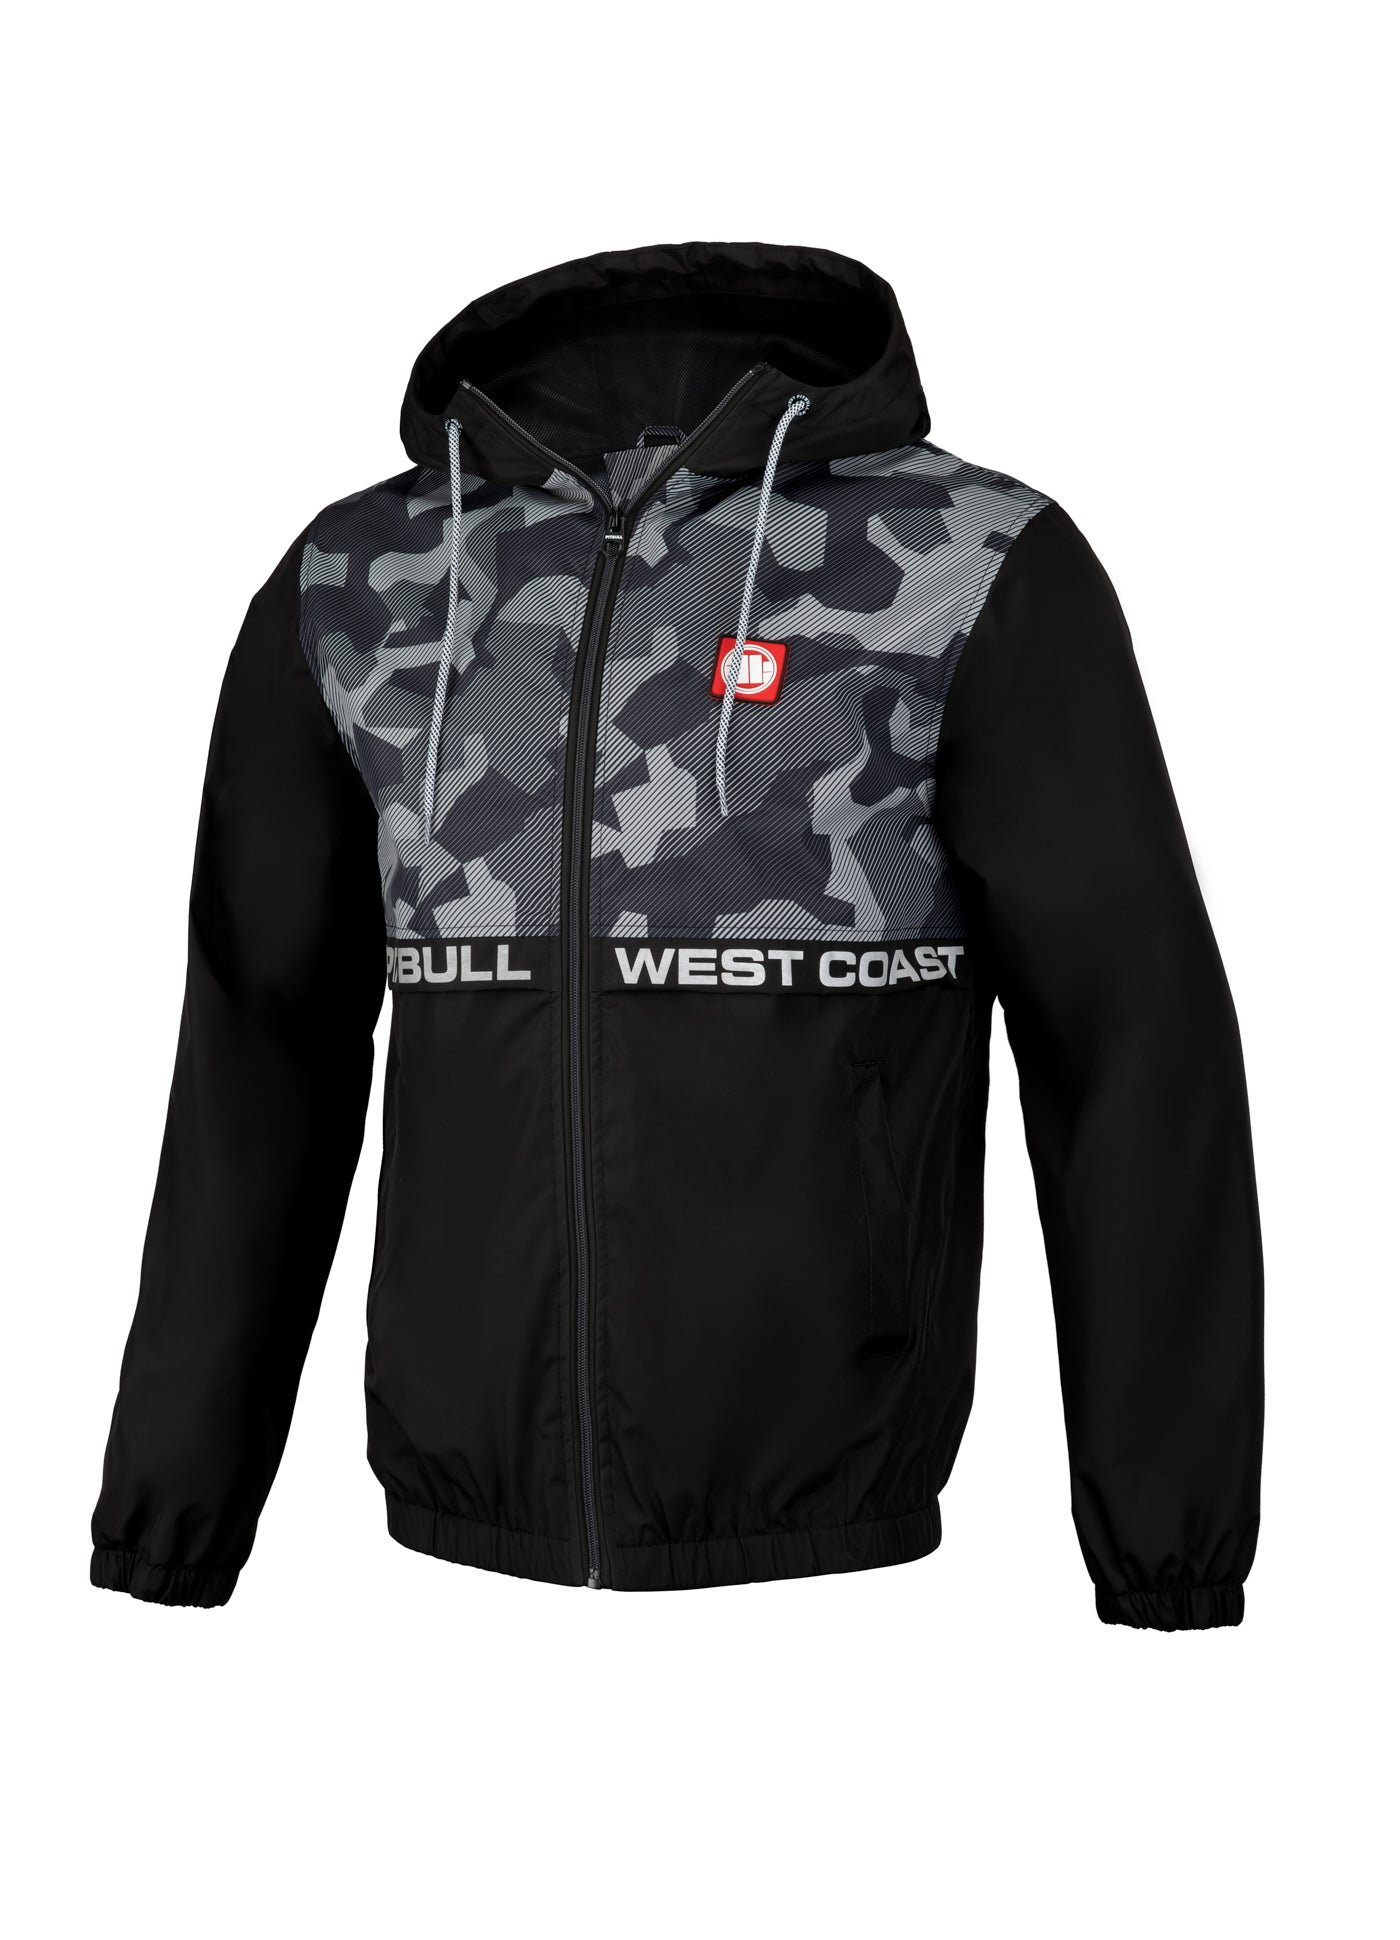 SHERWOOD Thick Hooded Nylon Jacket Black/Black Camo - pitbullwestcoast